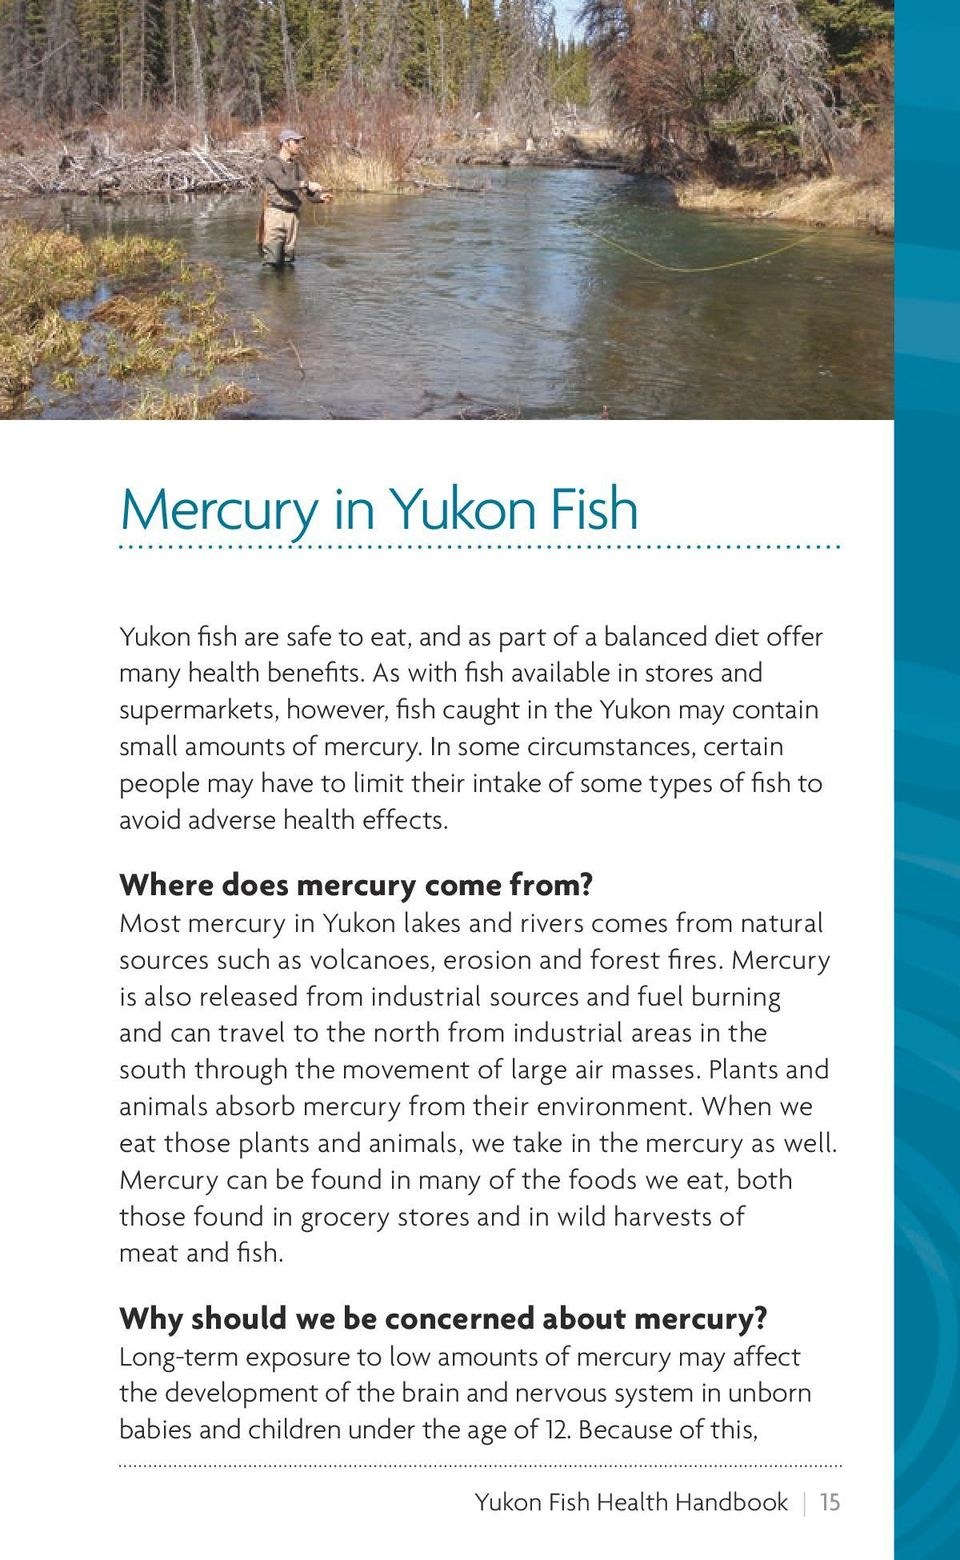 Yukon fish health handbook pdf for Why do fish have mercury